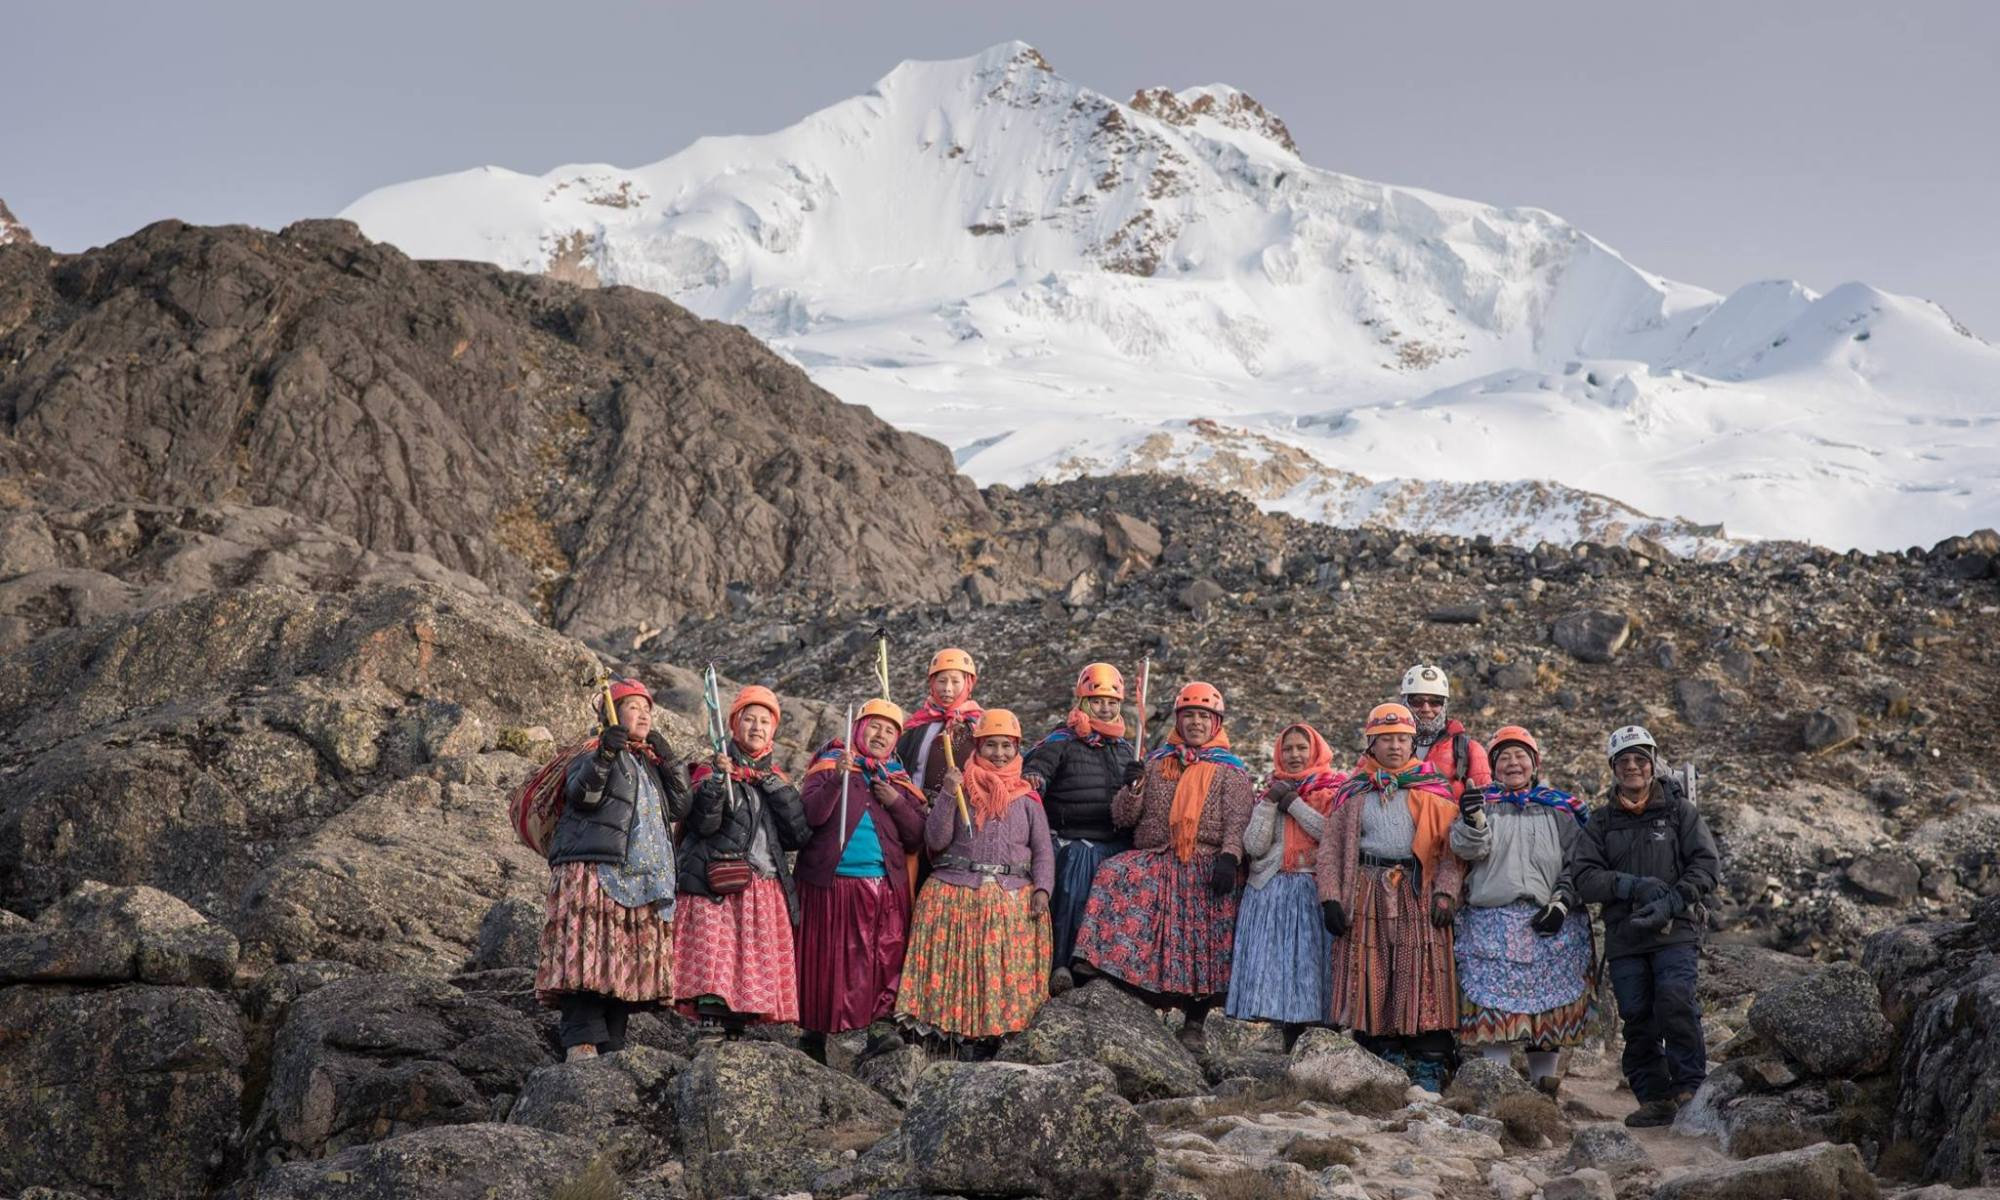 A group of Bolivian 'Cholitas' women to climb Aconcagua. Photo Marzena Wystrach Marchowska. Posted on their Facebook page.